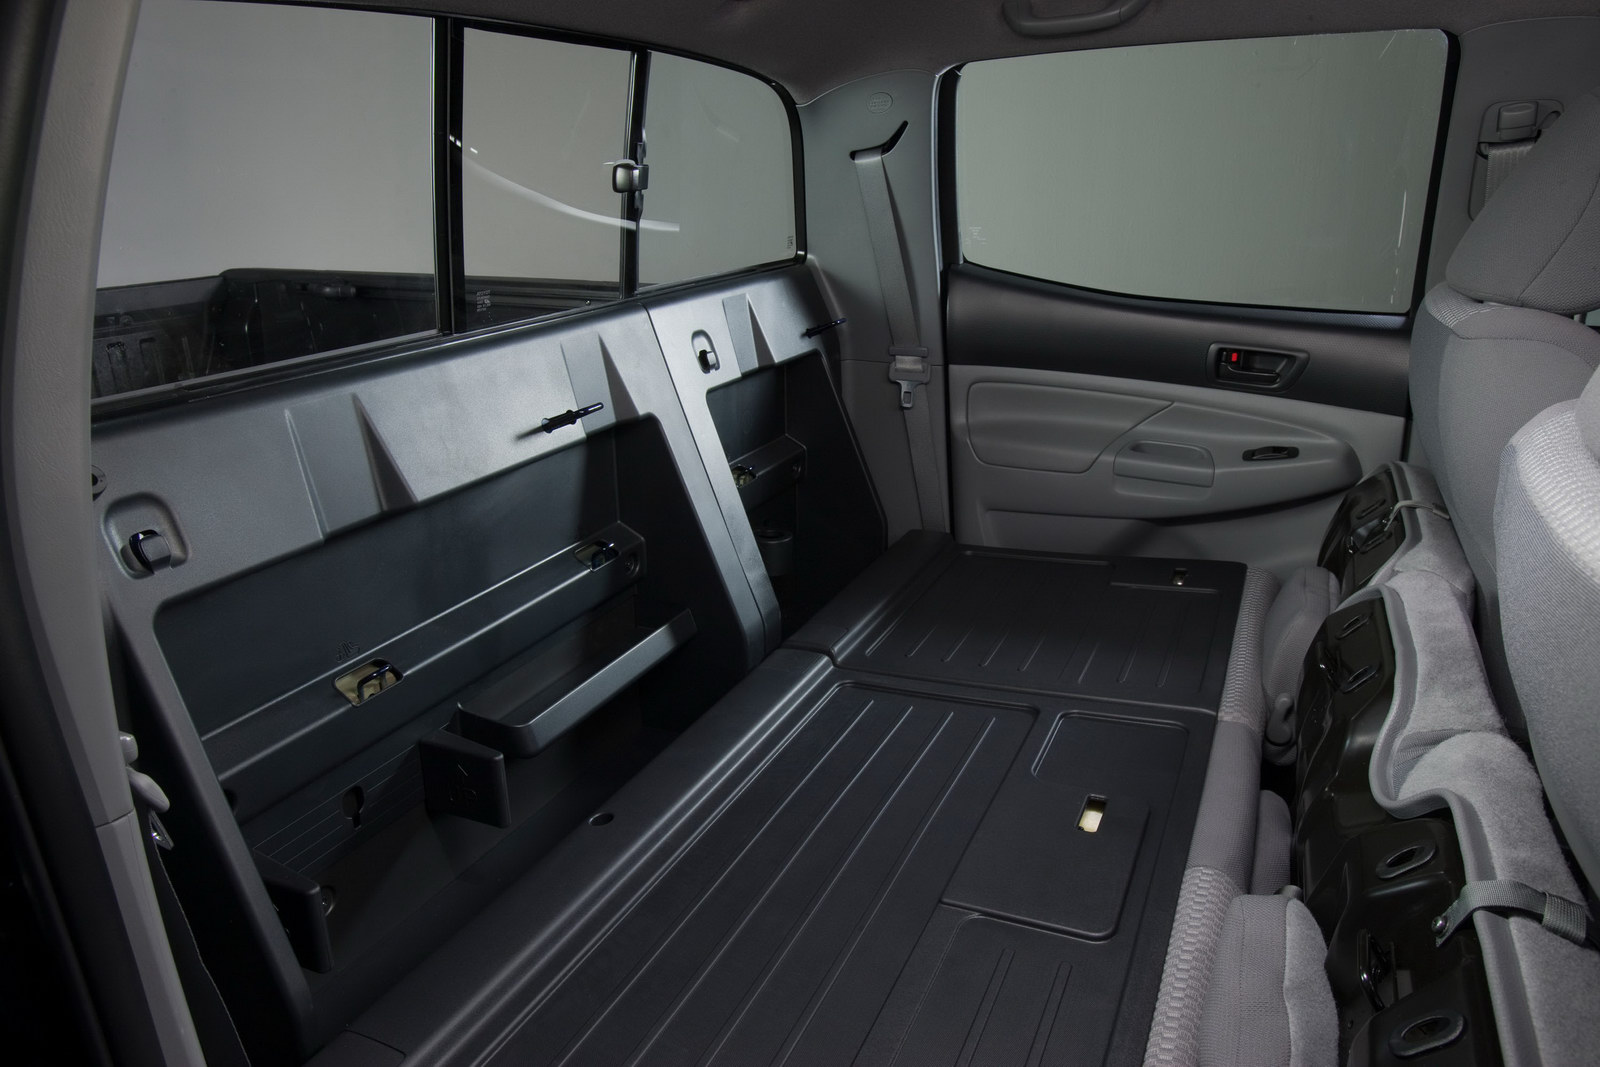 2012 Tacoma Seat Wiring Diagram Trusted Toyota Trailer Gets A New Look And Enture System Autoevolution 2010